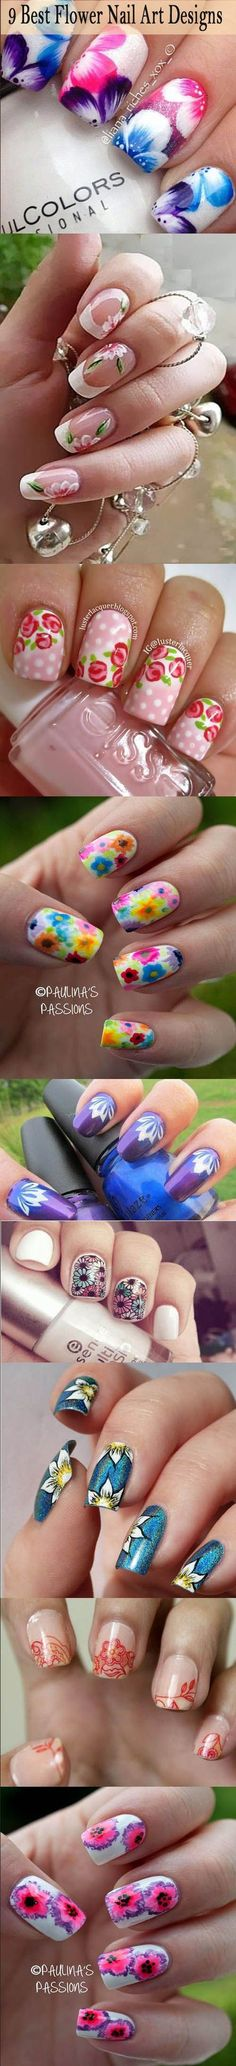 nails - 9 Best Flower Nail Art Designs Discover and share your nail design ideas on www.popmiss.com/...